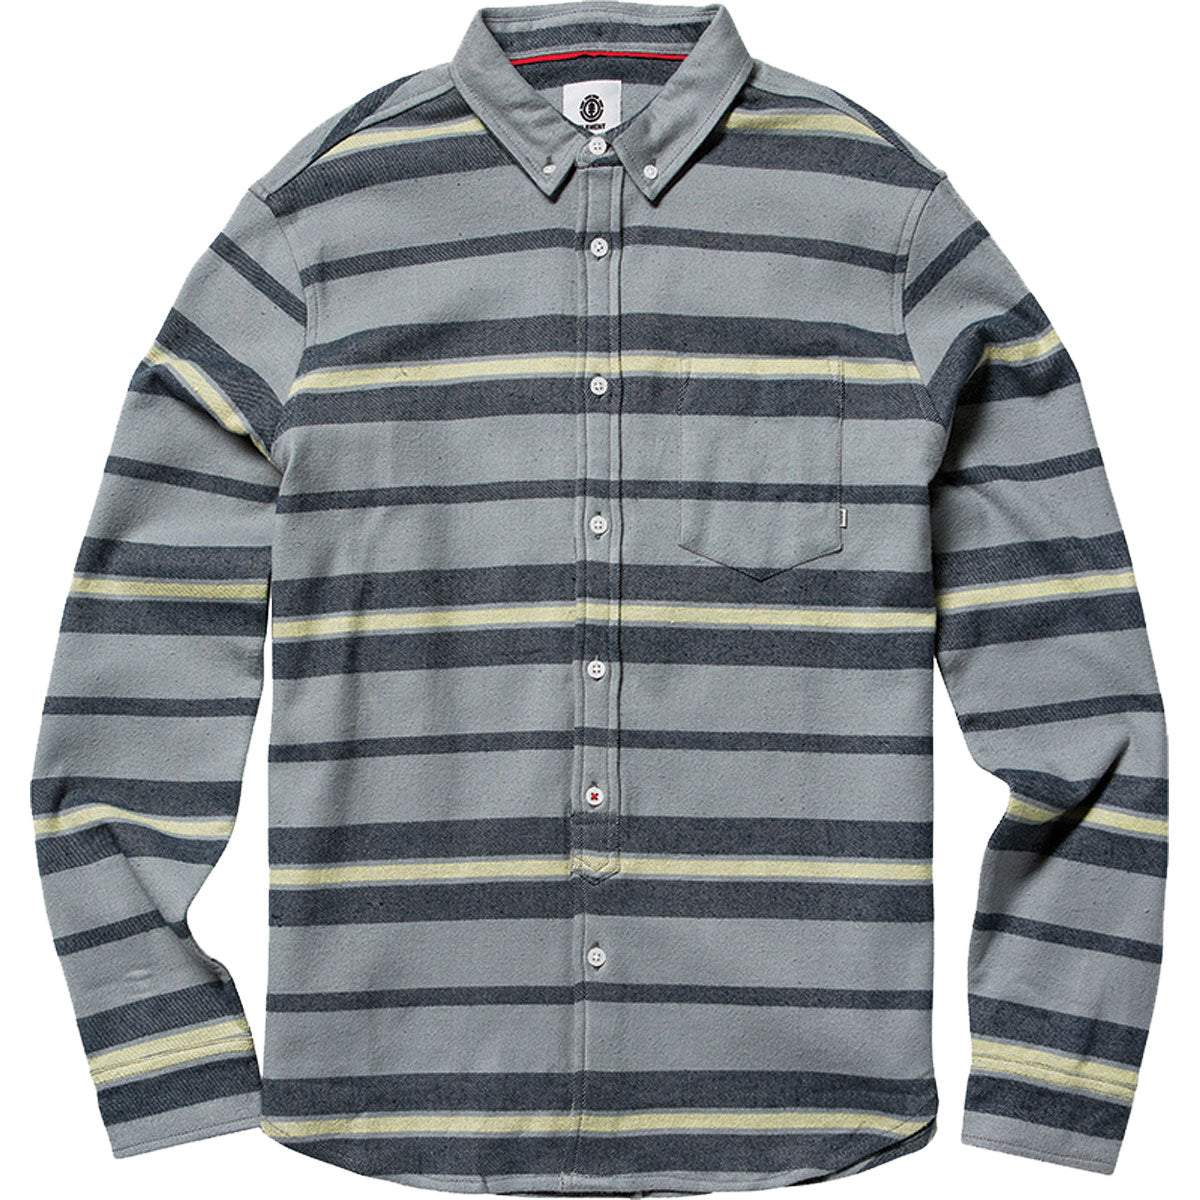 Element Pollock Men's Button Up Long-Sleeve Shirts - Smoke Grey